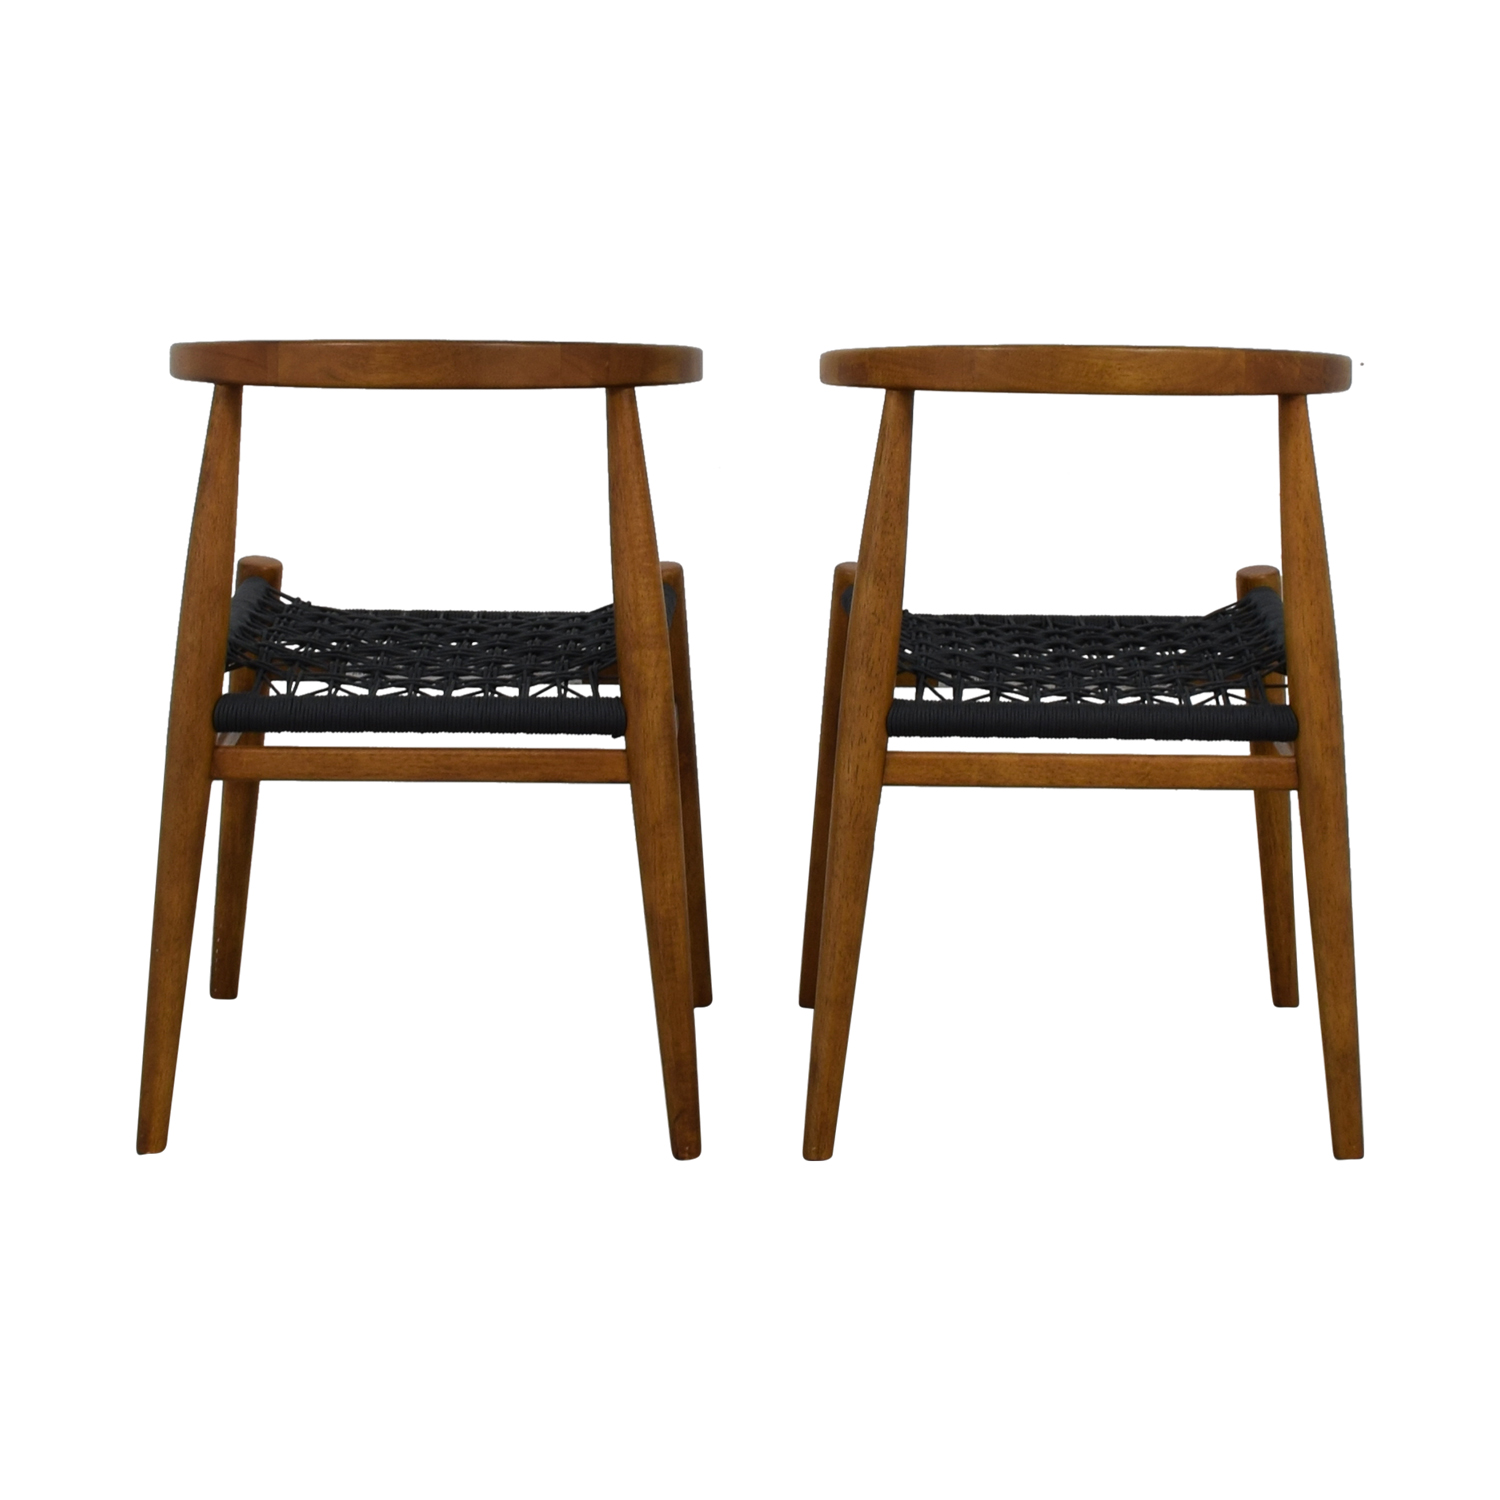 West Elm West Elm Acorn Wood and Charcoal Rope Dining Chairs used